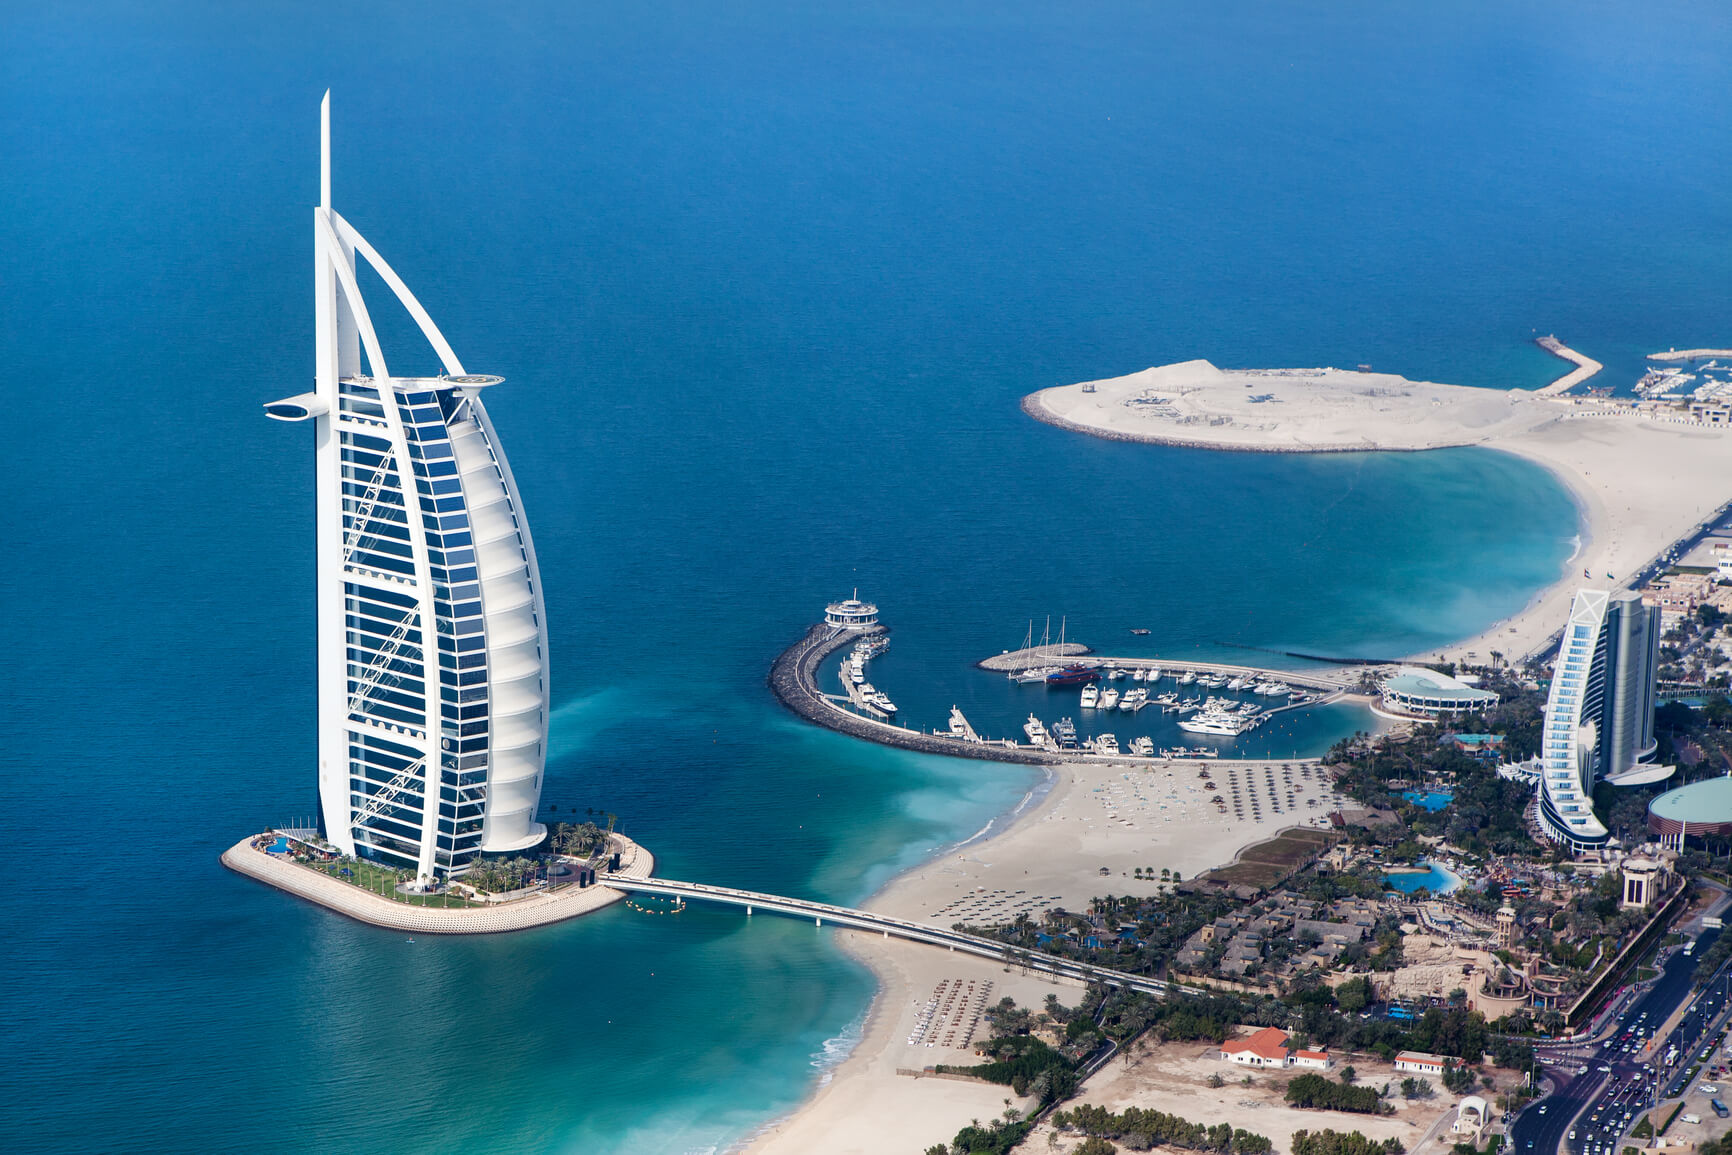 San Francisco to Dubai, UAE for only $655 roundtrip